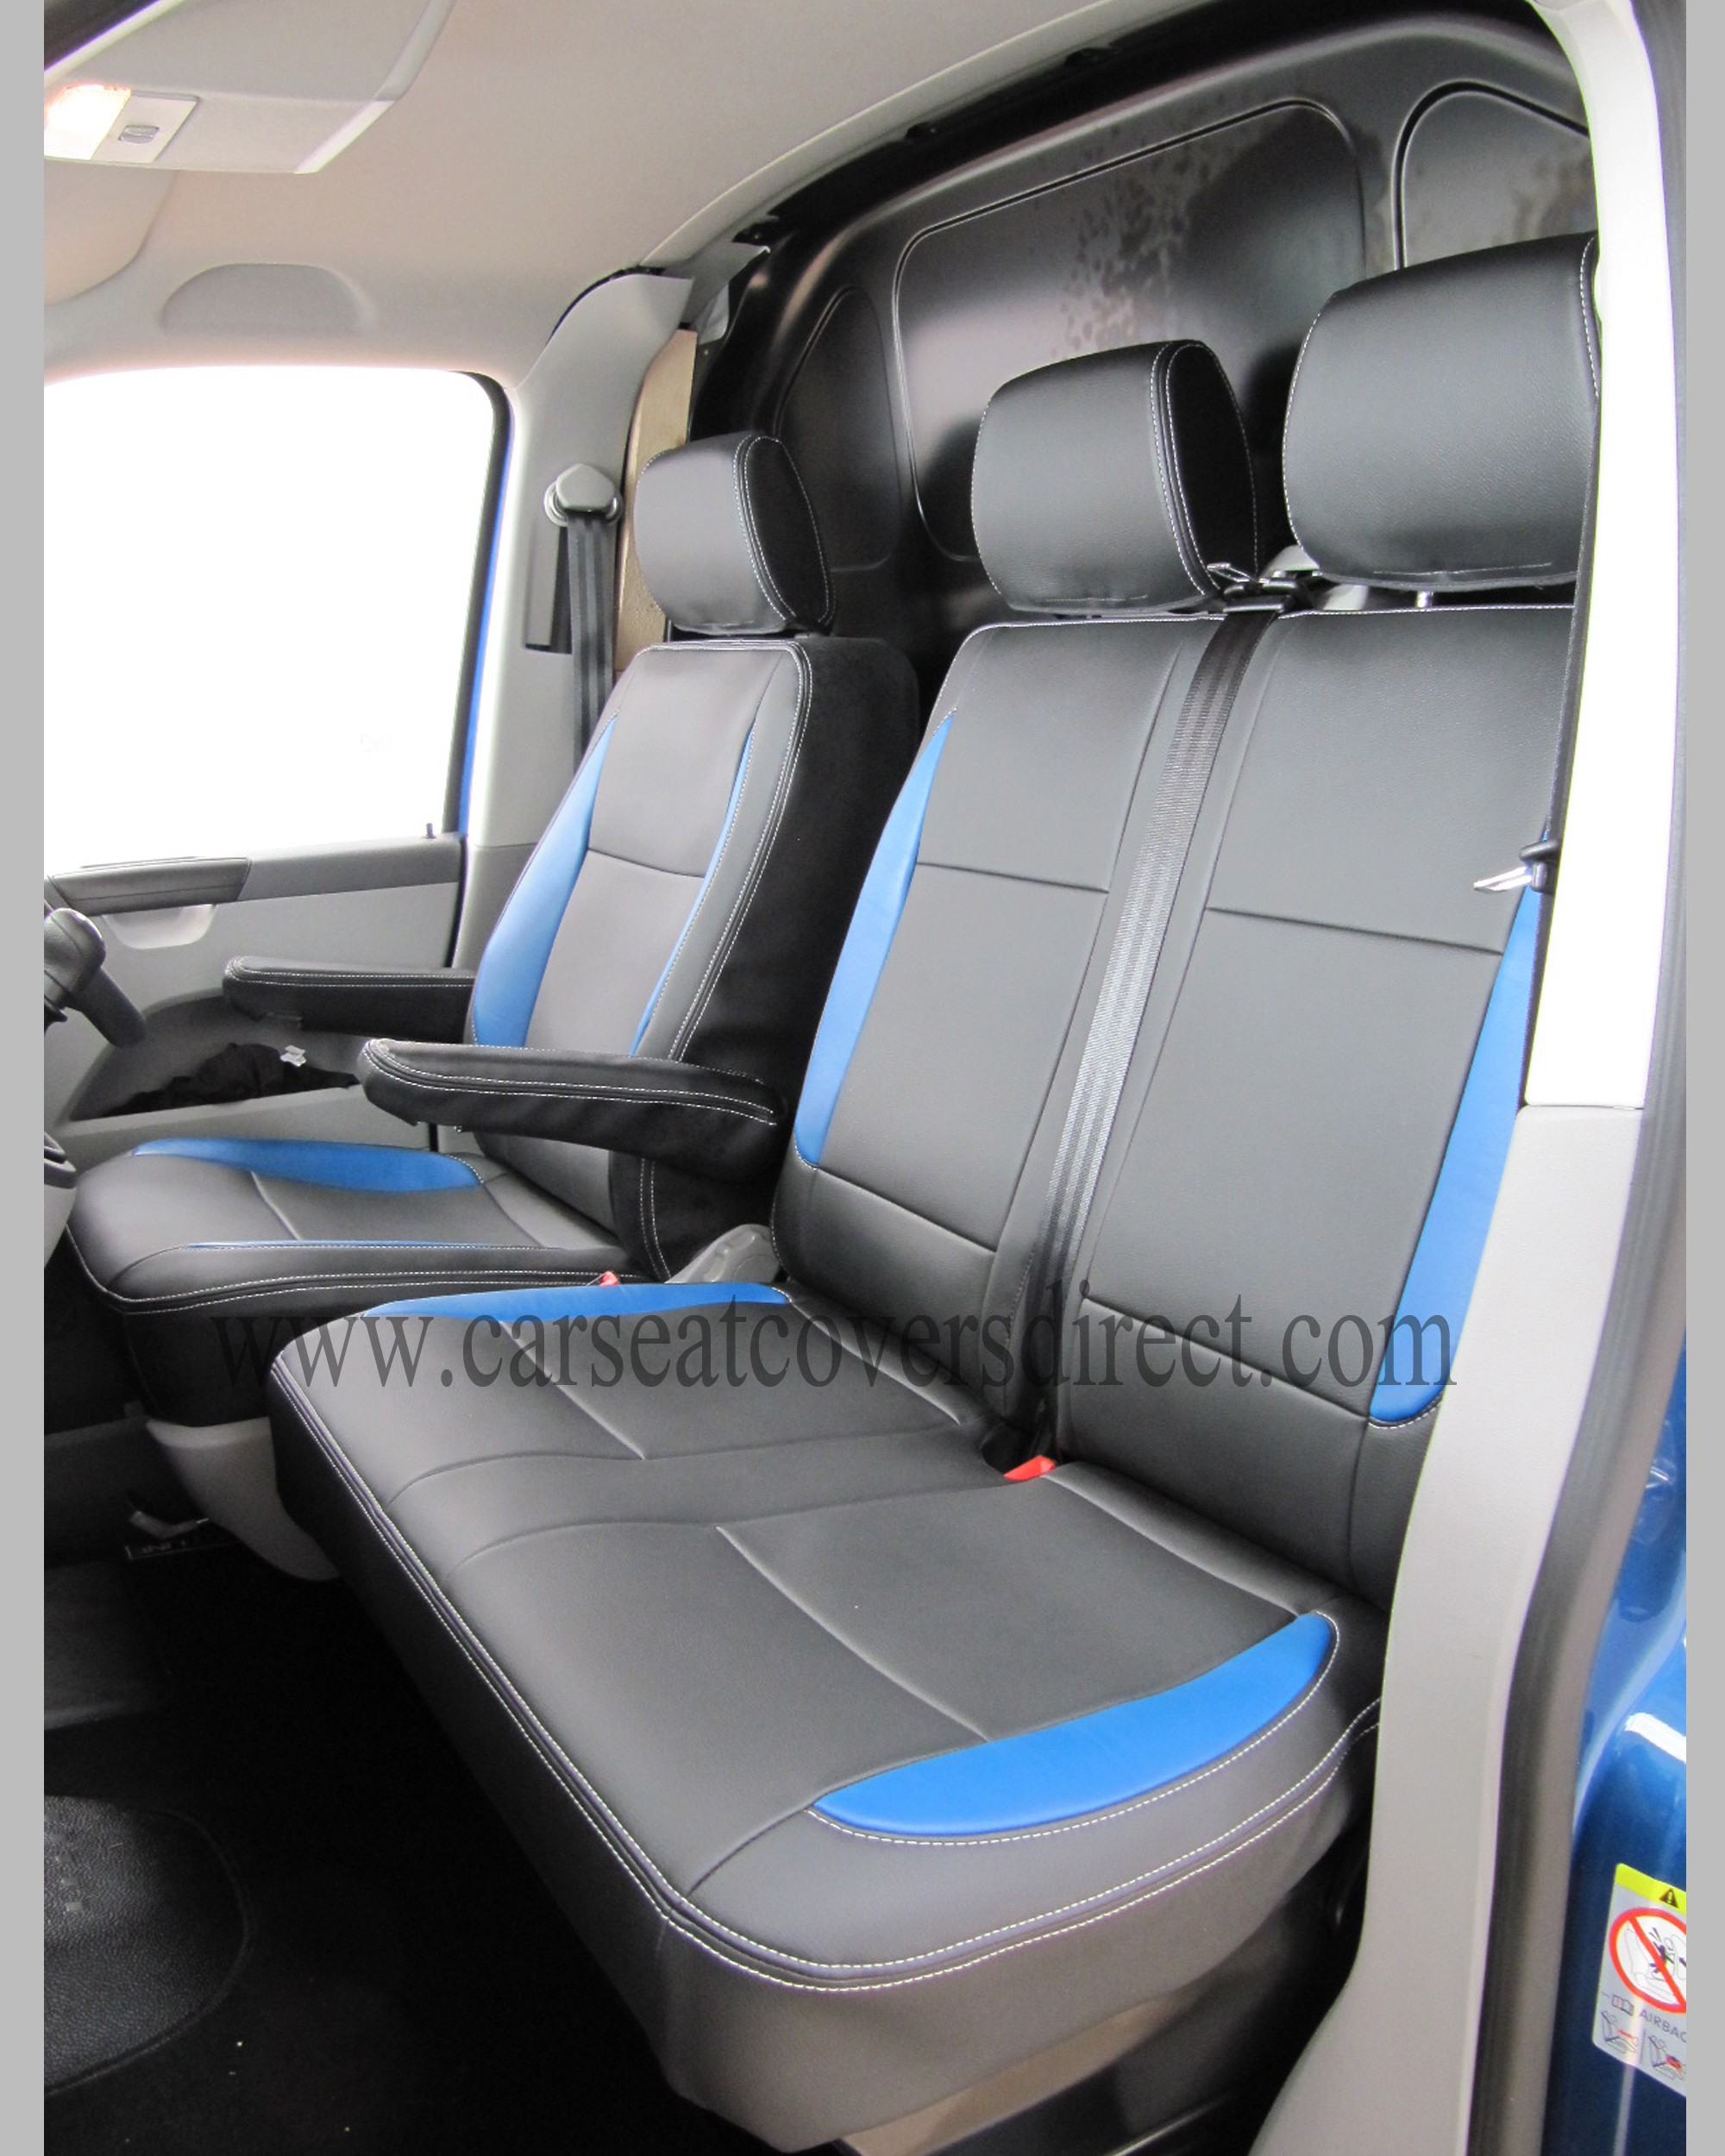 Volkswagen Vw Transporter T5 Black And Blue Seat Covers